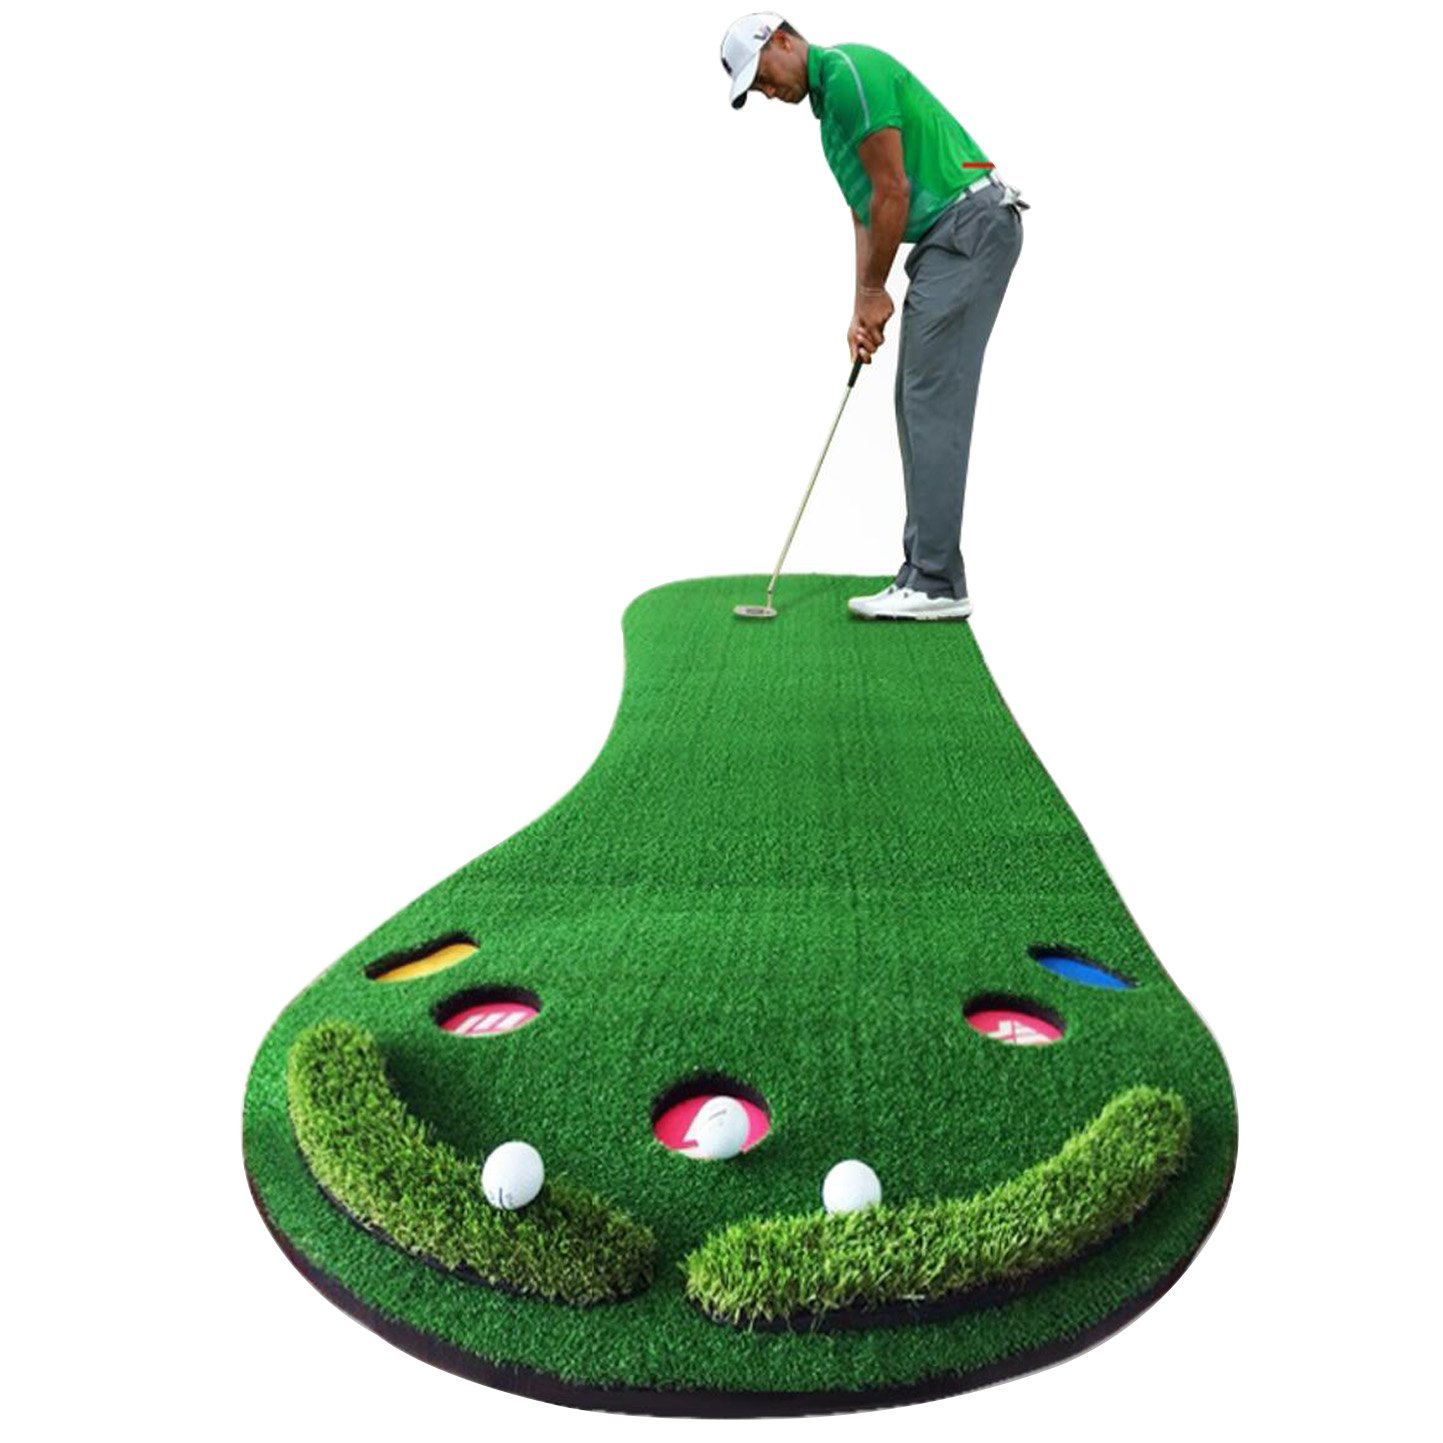 Golf Putting Green By New Brand PGM,3.28FTX9.84FT,Premium EVA Backing Allows Roll Up, No Creases, More Holes